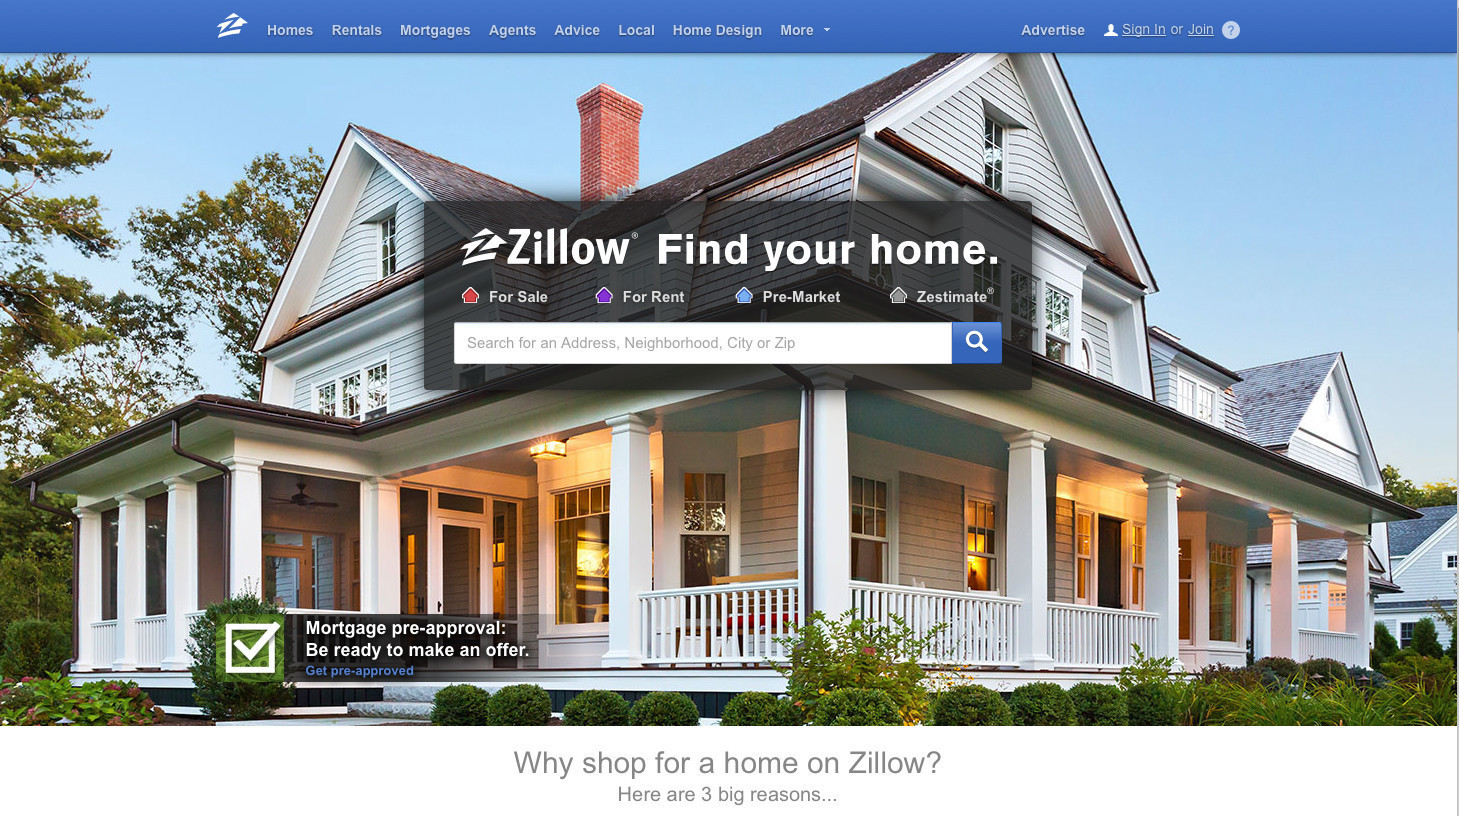 Zillow Group Owes $8.2 Million To Rosemont Photo Company